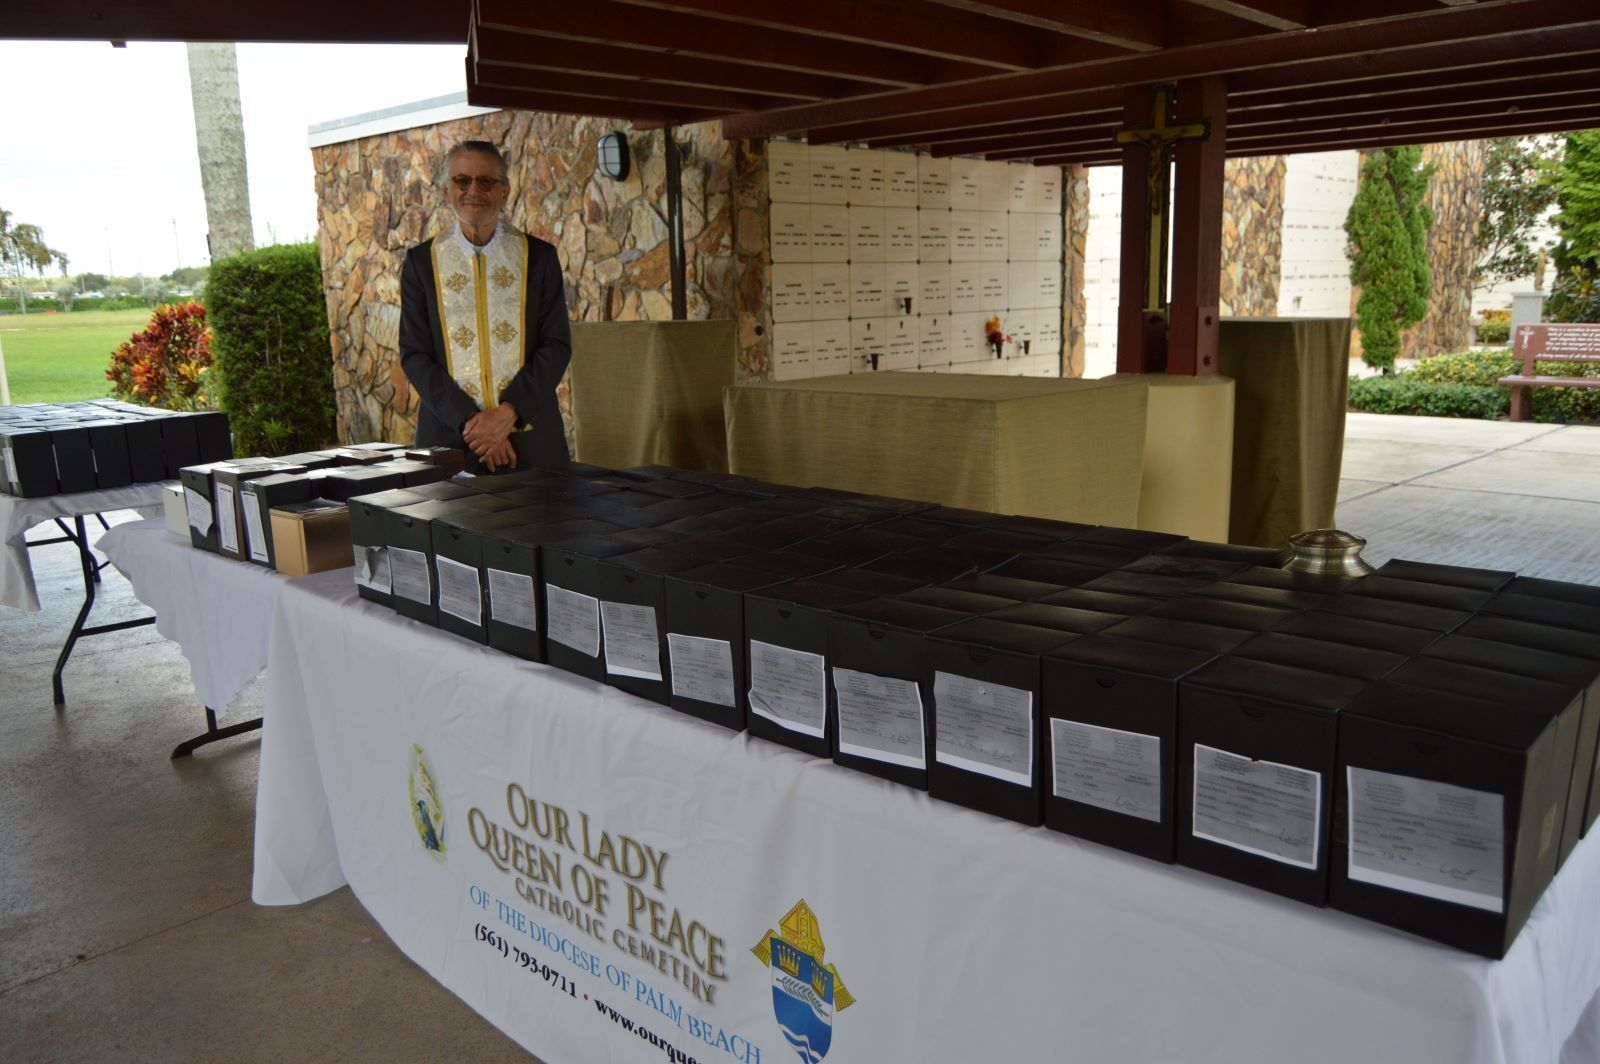 Compassion service blesses, buries 171 cremated remains